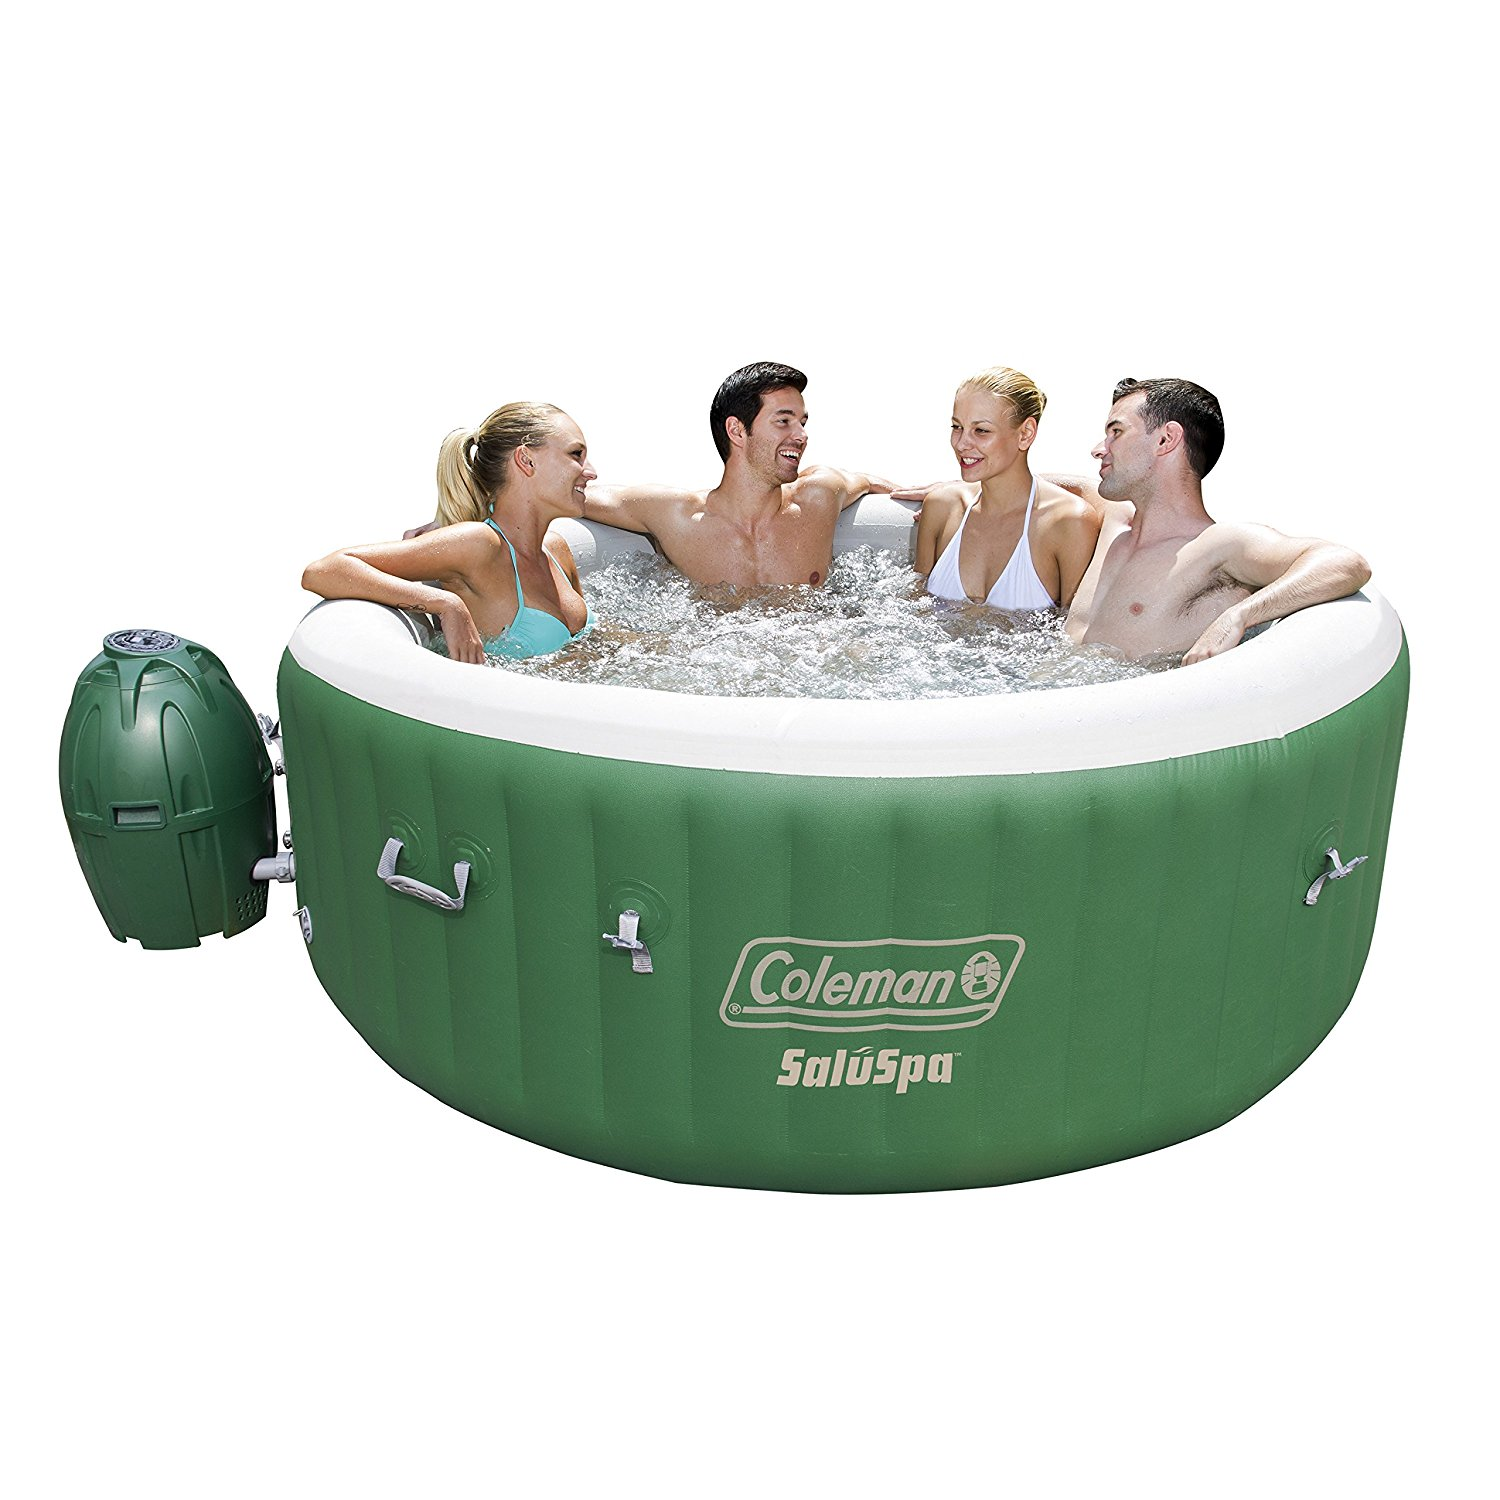 Top 10 Best Blow Up Hot Tub Reviews In 2019